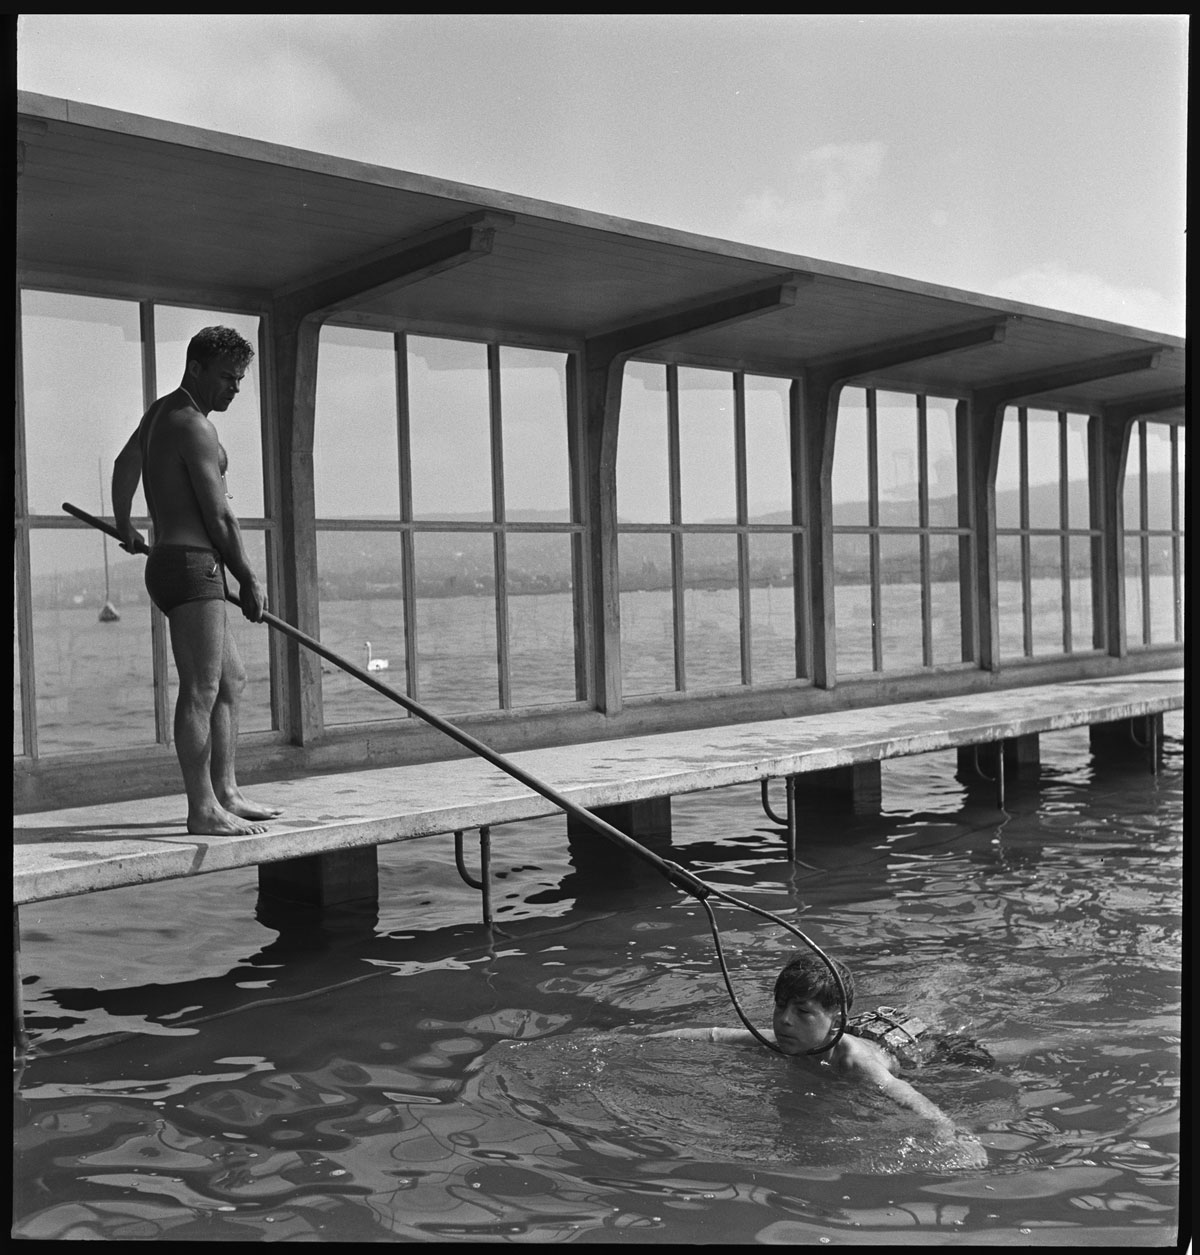 Anon. 'Swimming lessons for schoolchildren at the Wollishofen lakeside swimming area, Zurich' 1943. © Swiss National Museum